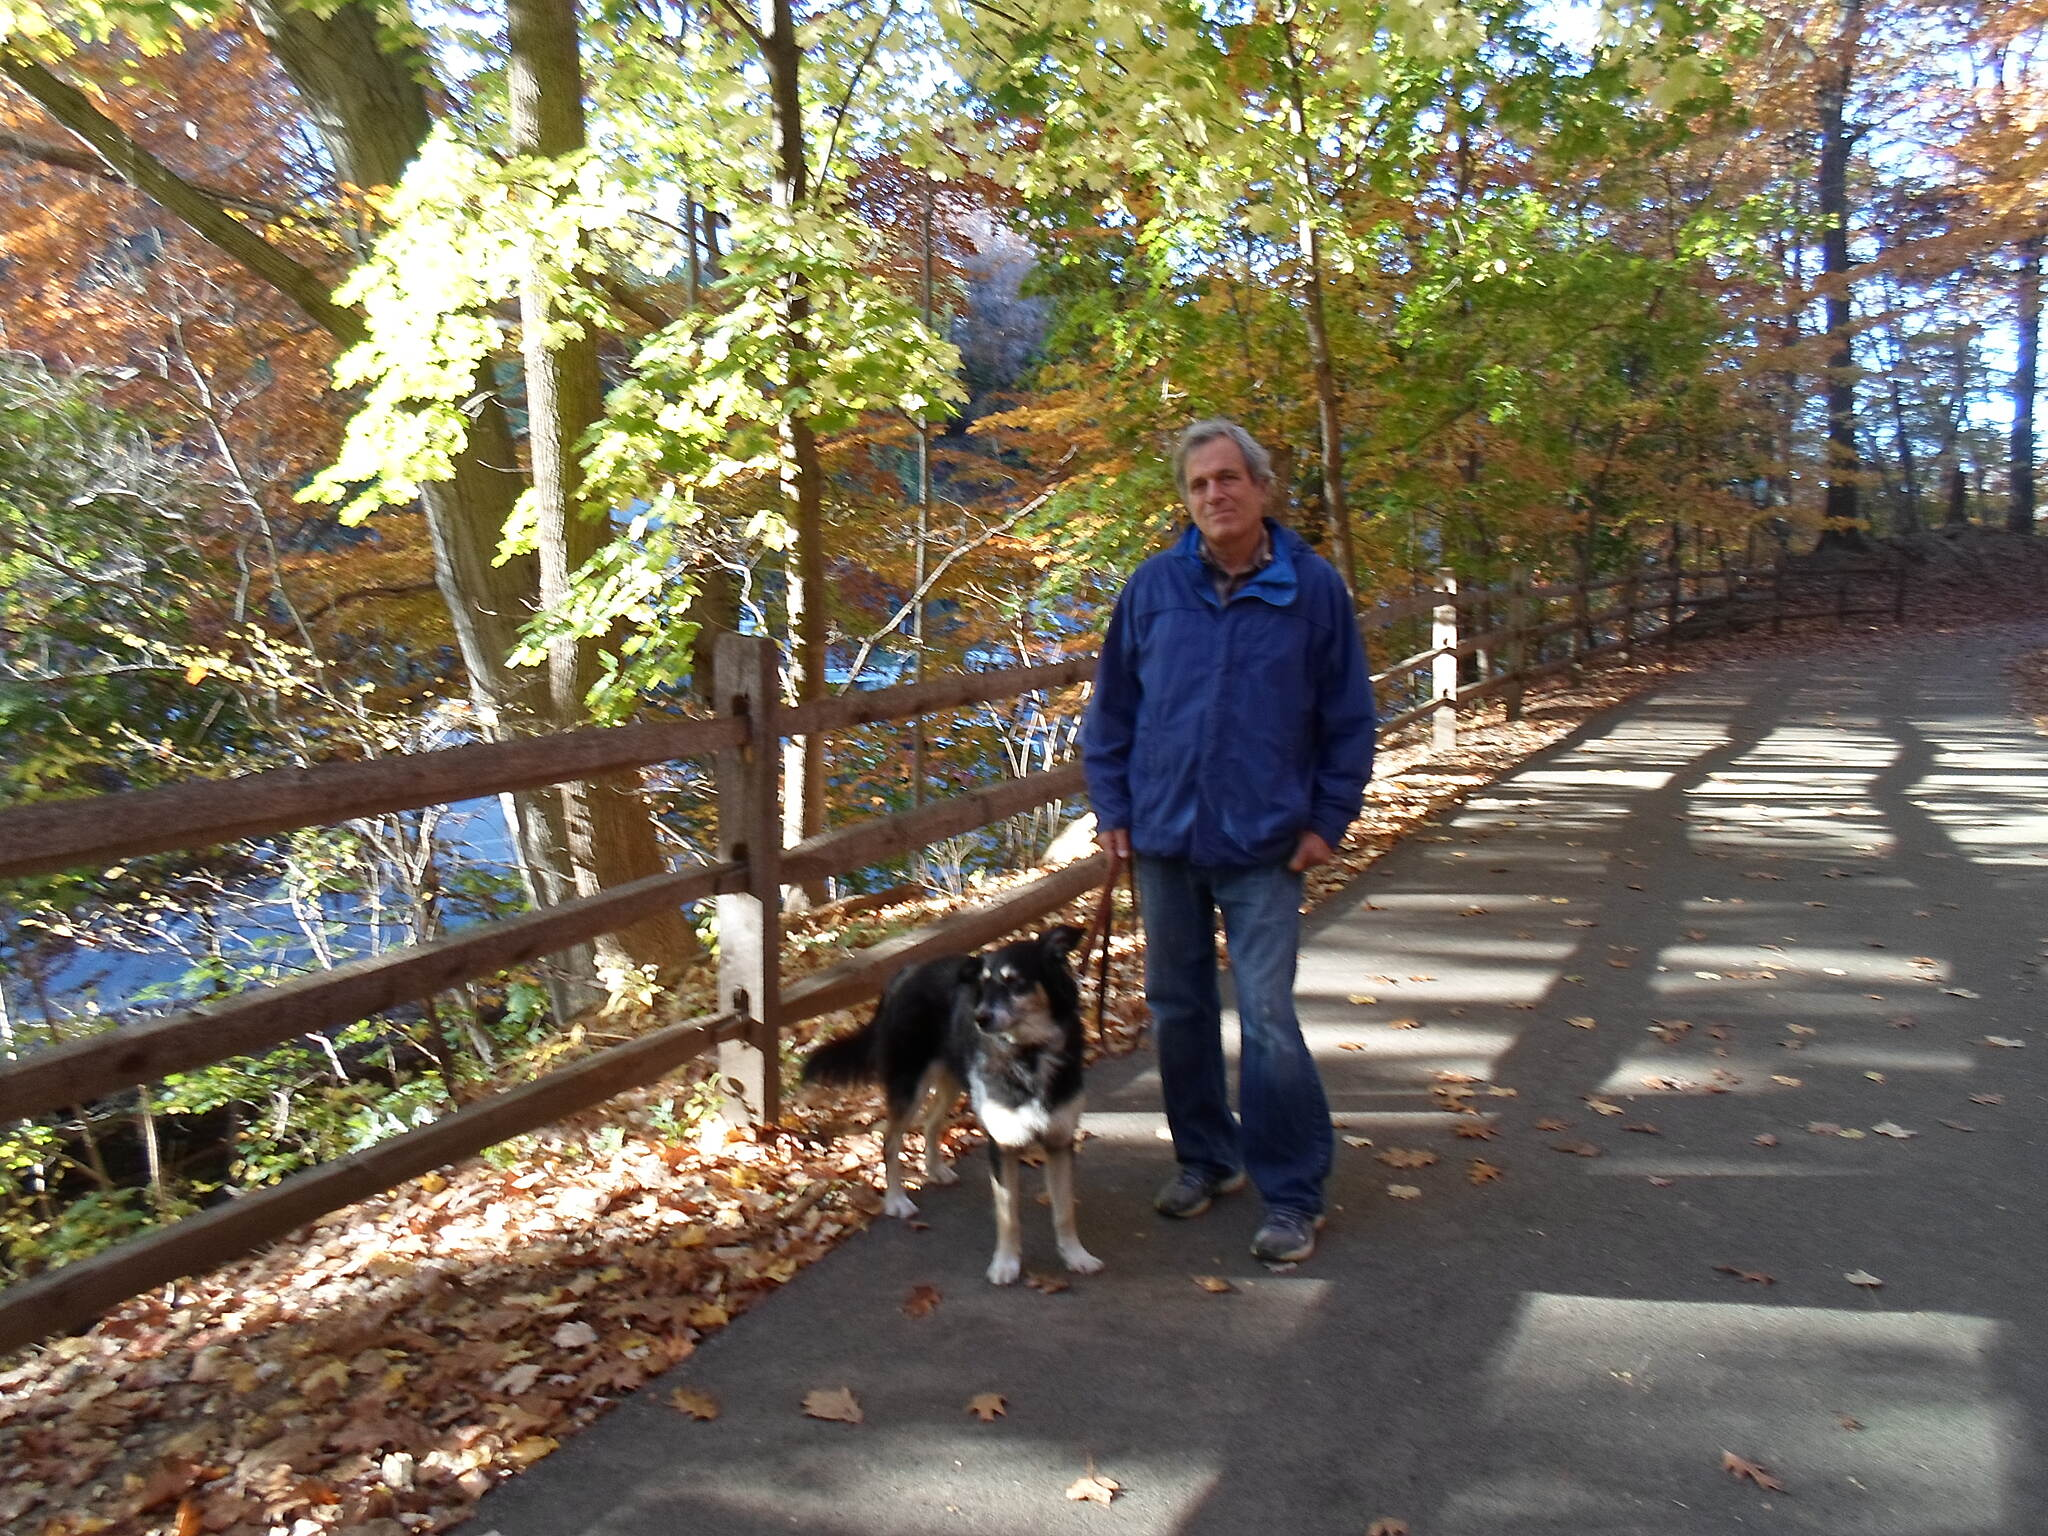 Cynwyd Heritage Trail Cynwyd Heritage Trail This man and his dog were out for a walk enjoying the fall foliage. Taken Nov. 2015.